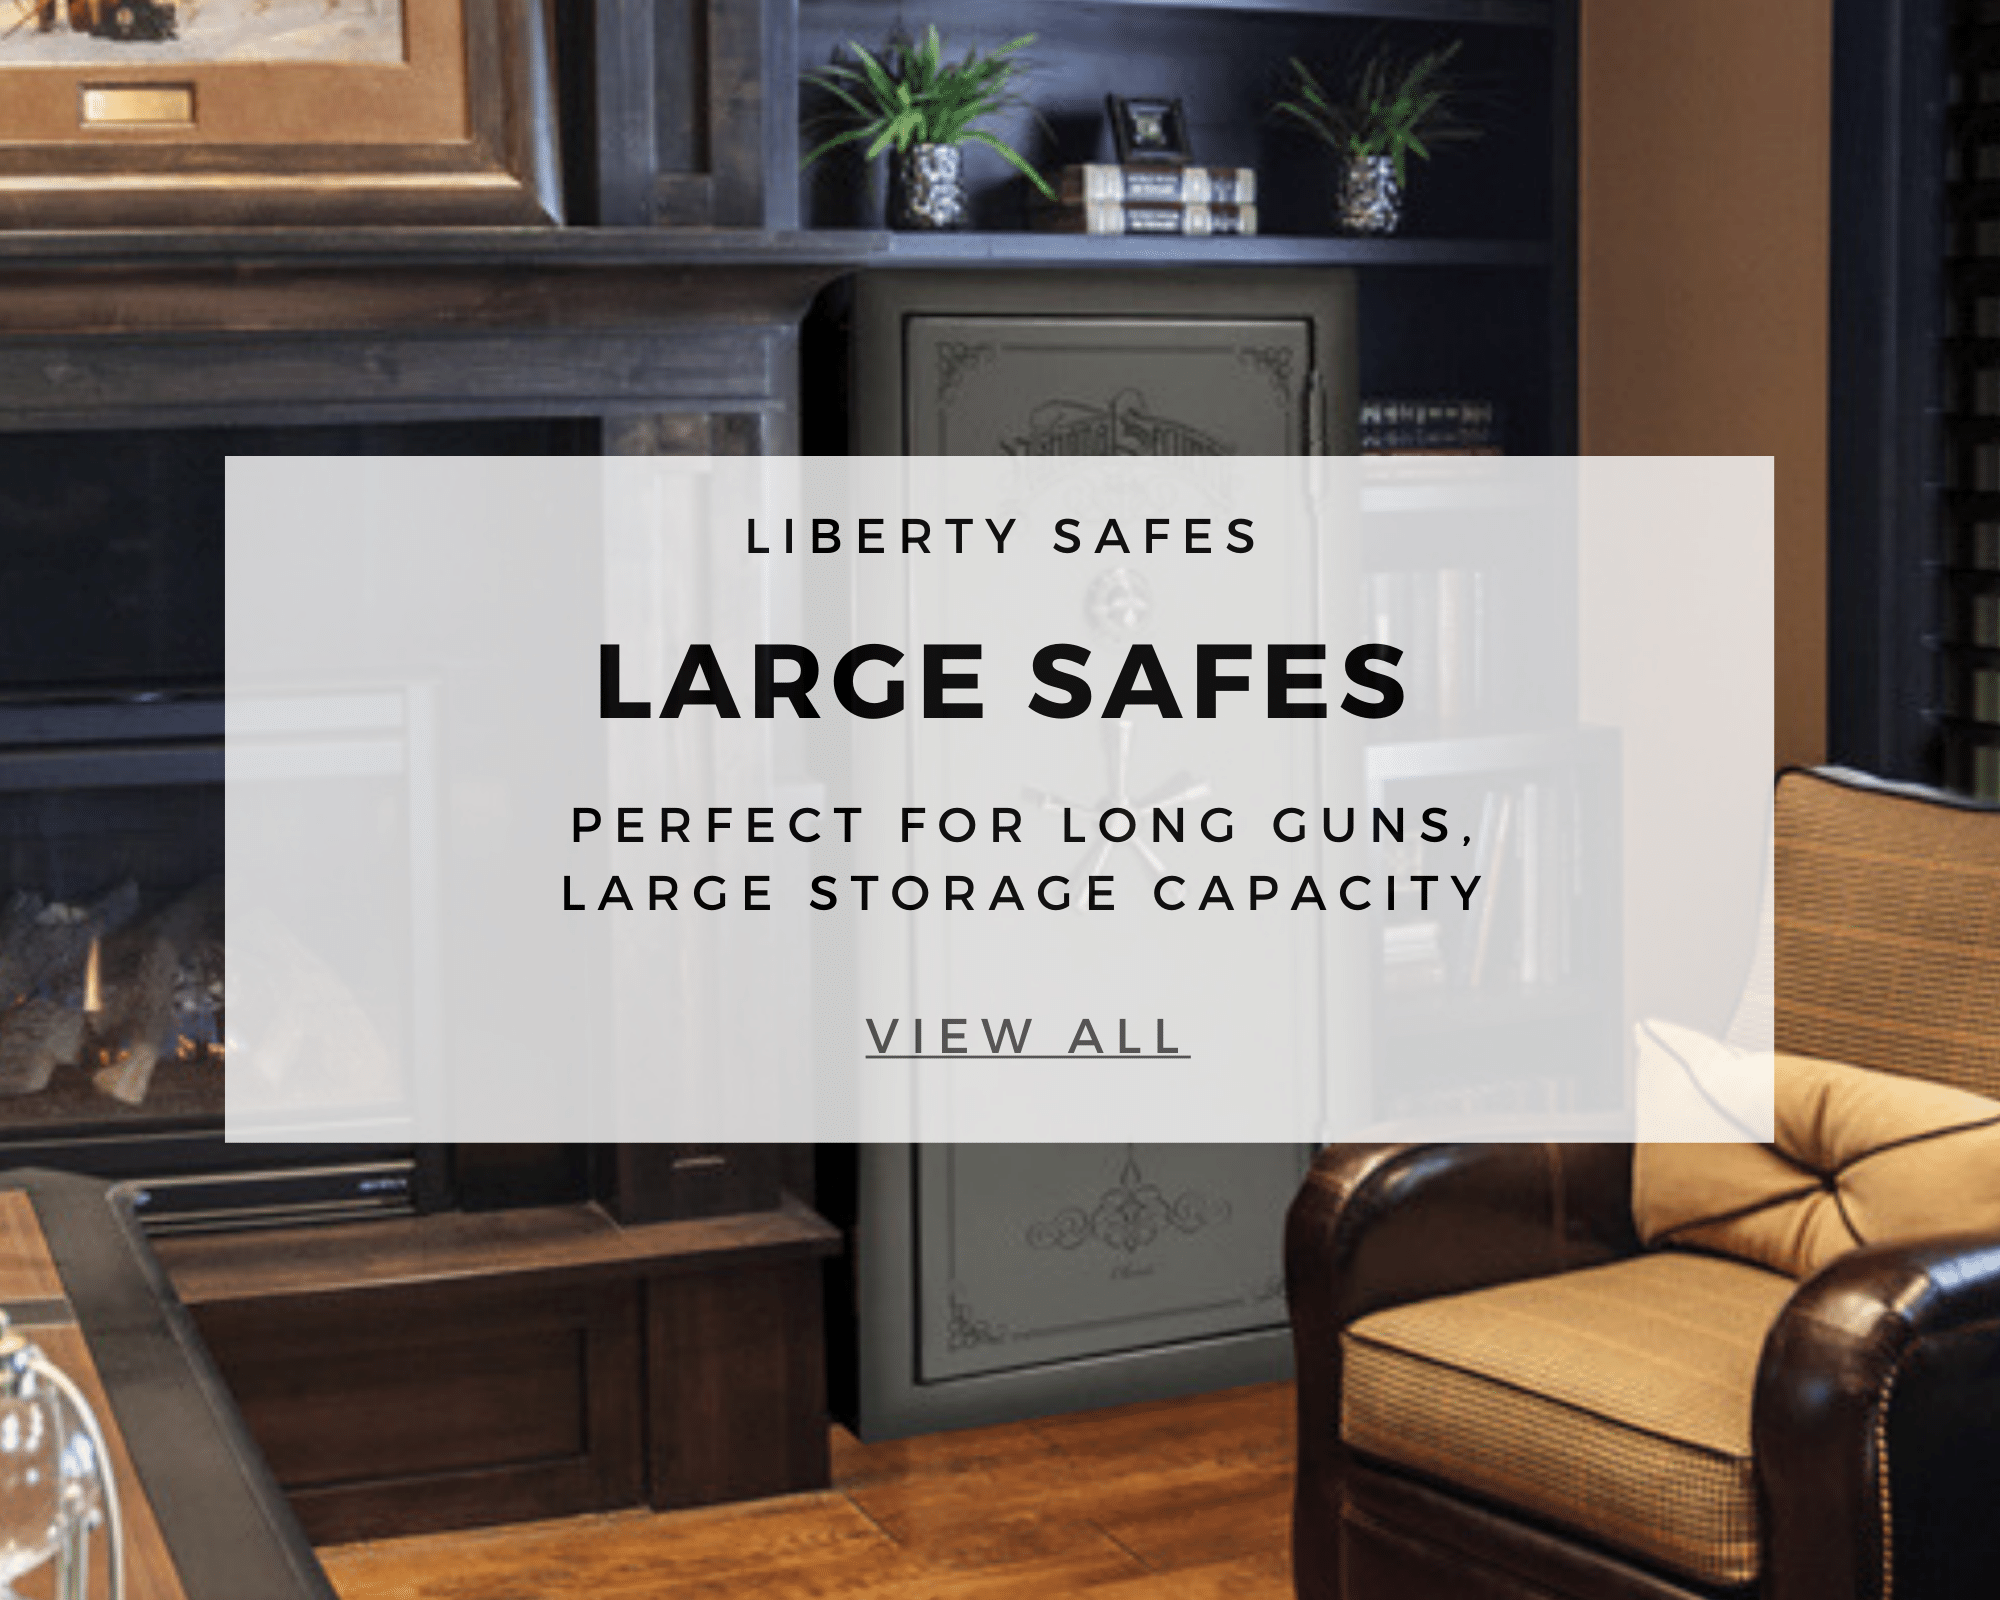 large safes text with picture in background of safe